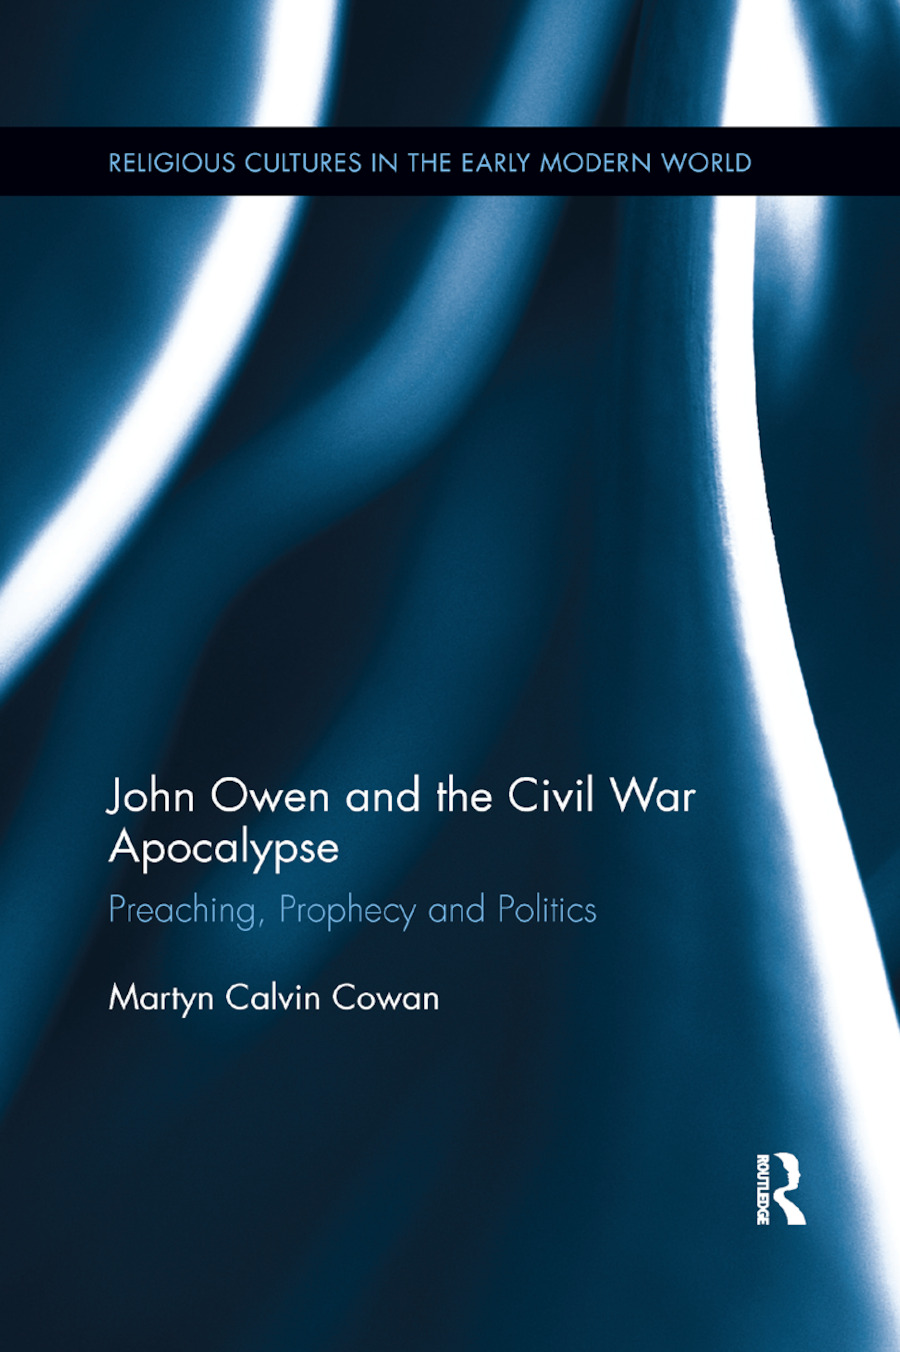 John Owen and the Civil War Apocalypse: Preaching, Prophecy and Politics book cover